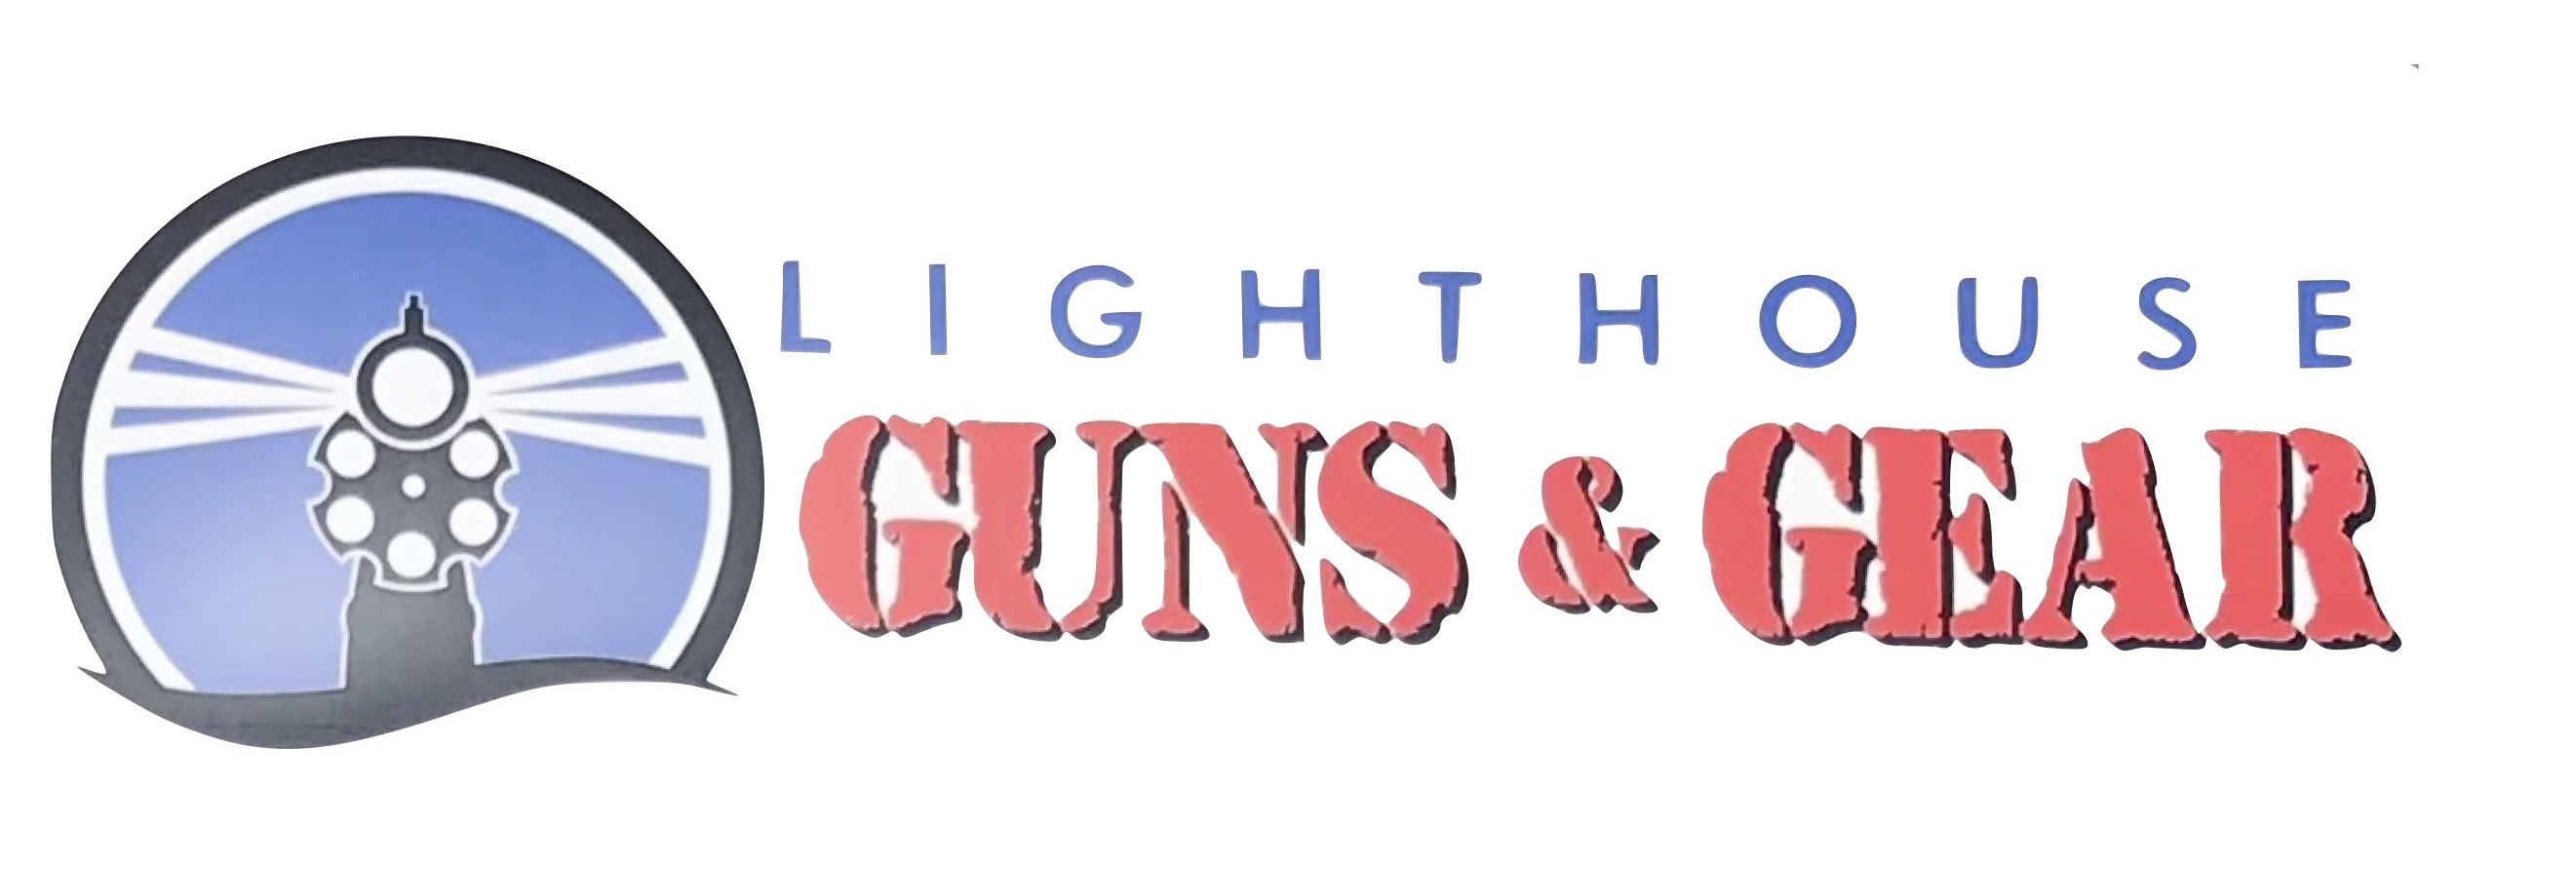 Lighthouse Guns & Gear